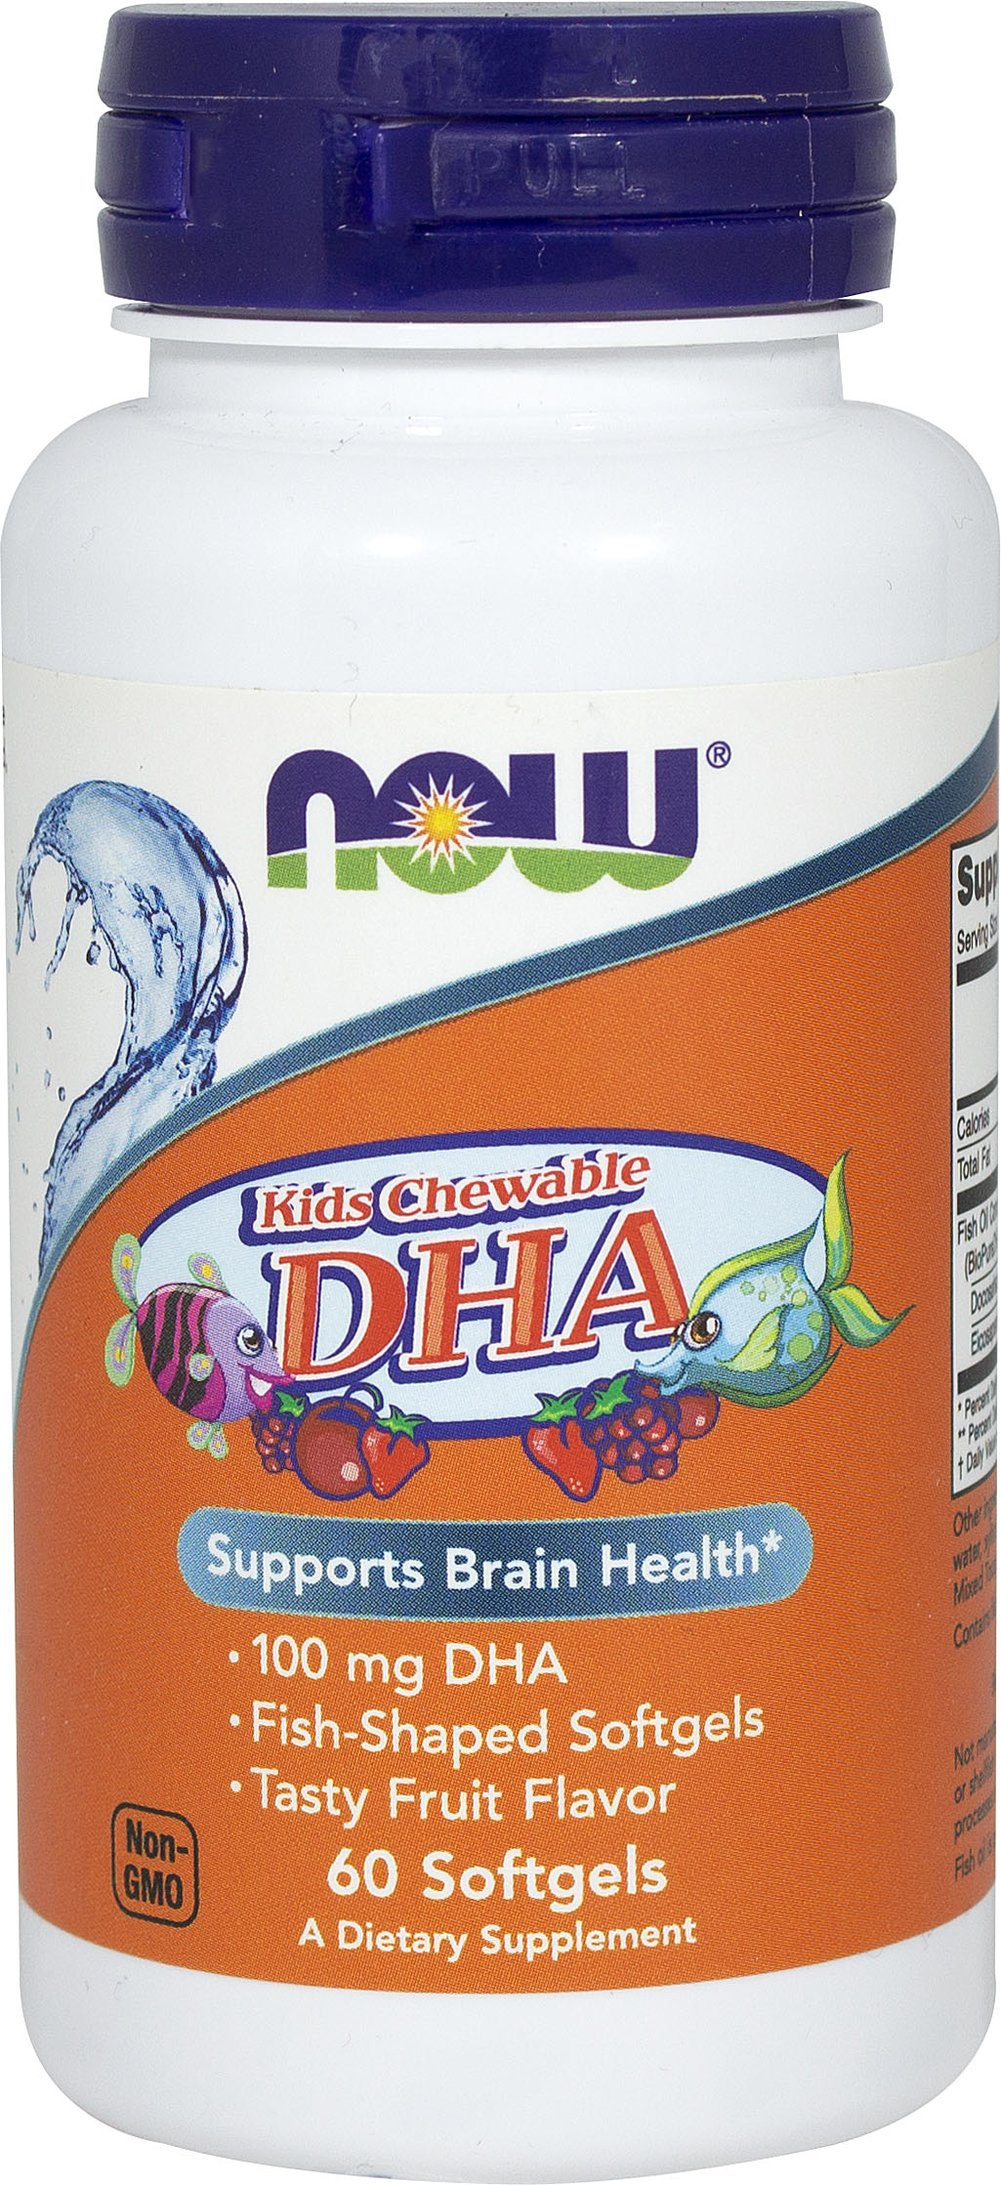 Kids Chewable DHA  60 Softgels